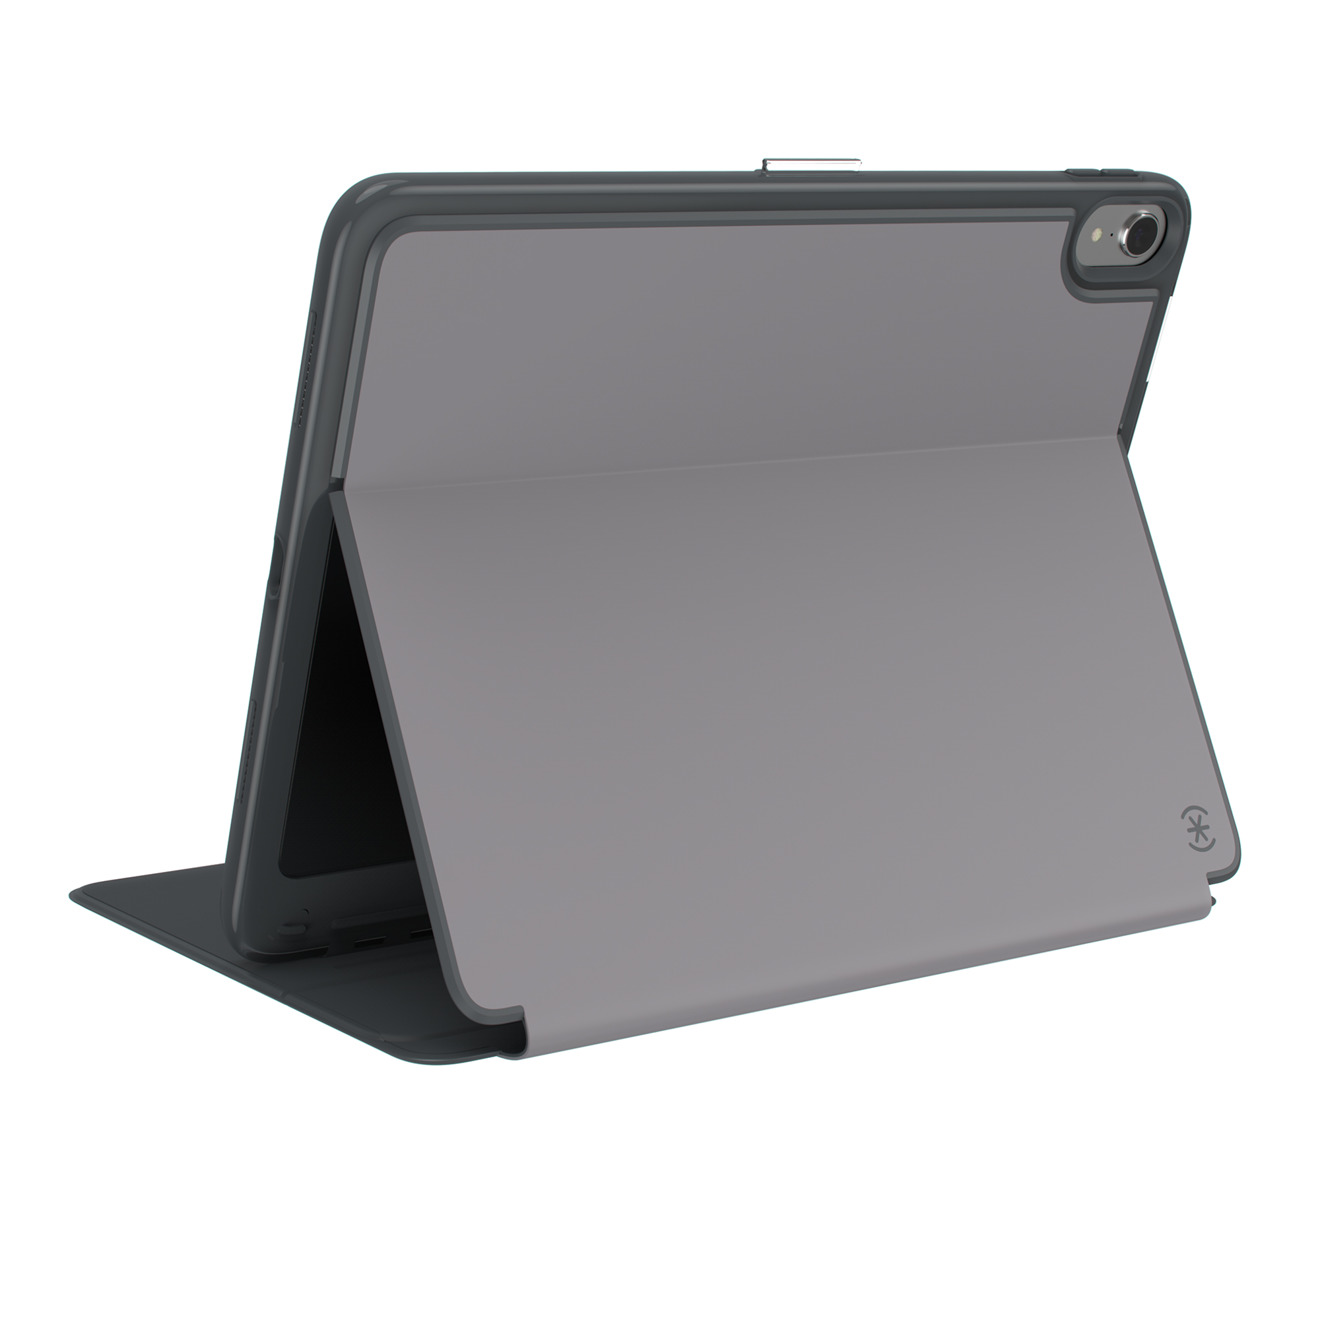 Speck Presidio Pro Folio for Apple 11 inch iPad Pro 2018